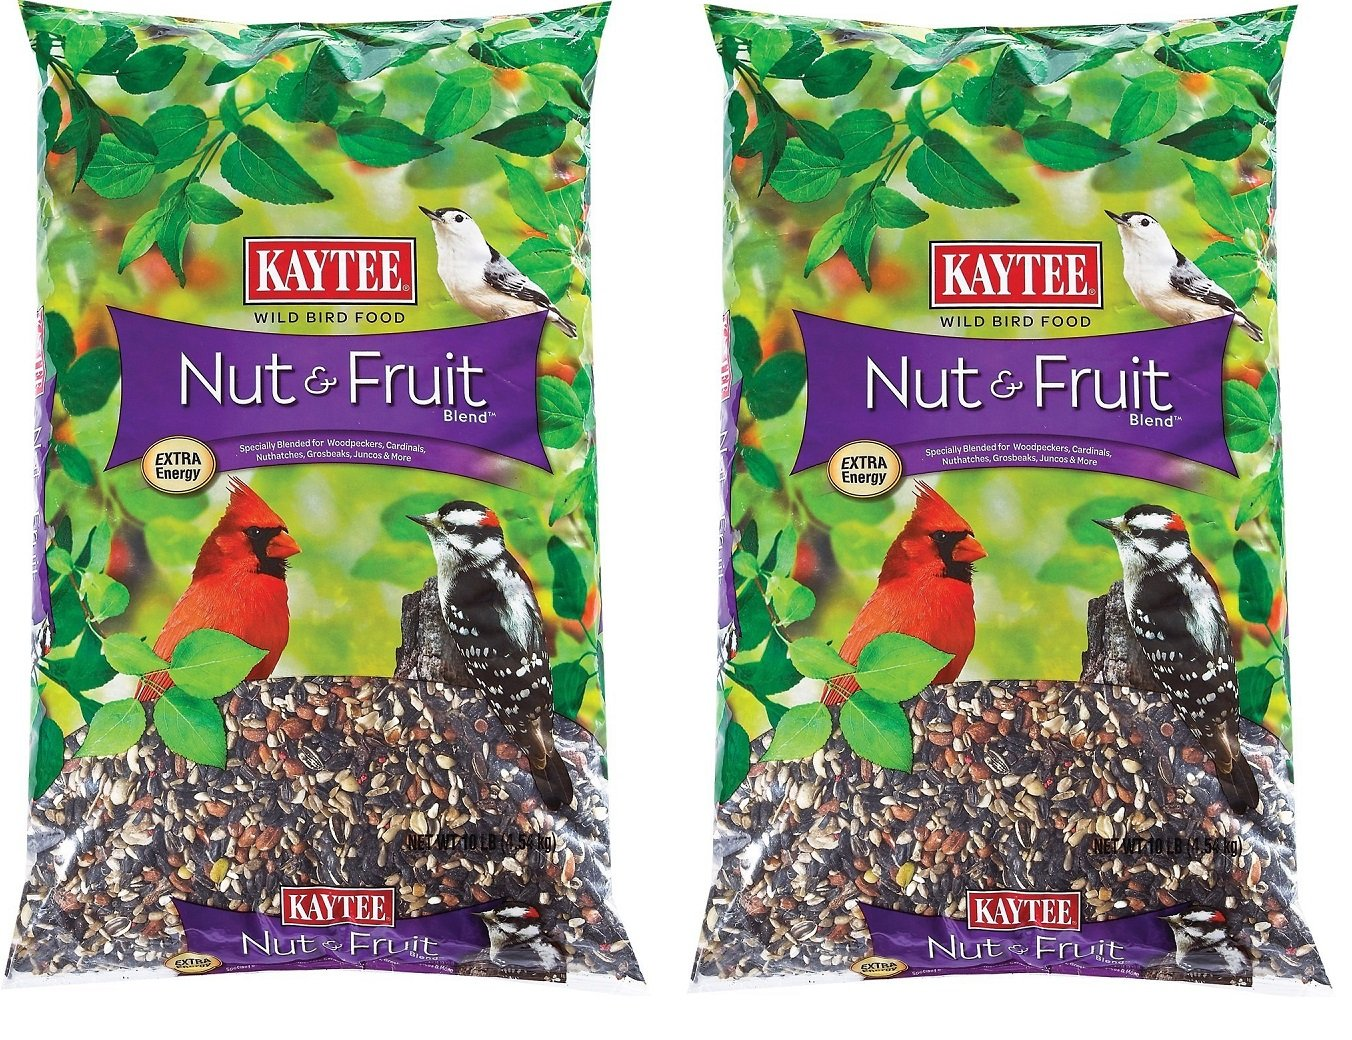 Kaytee CZAEEk Nut and Fruit Blend, 10 Pound Bag (2 Pack)